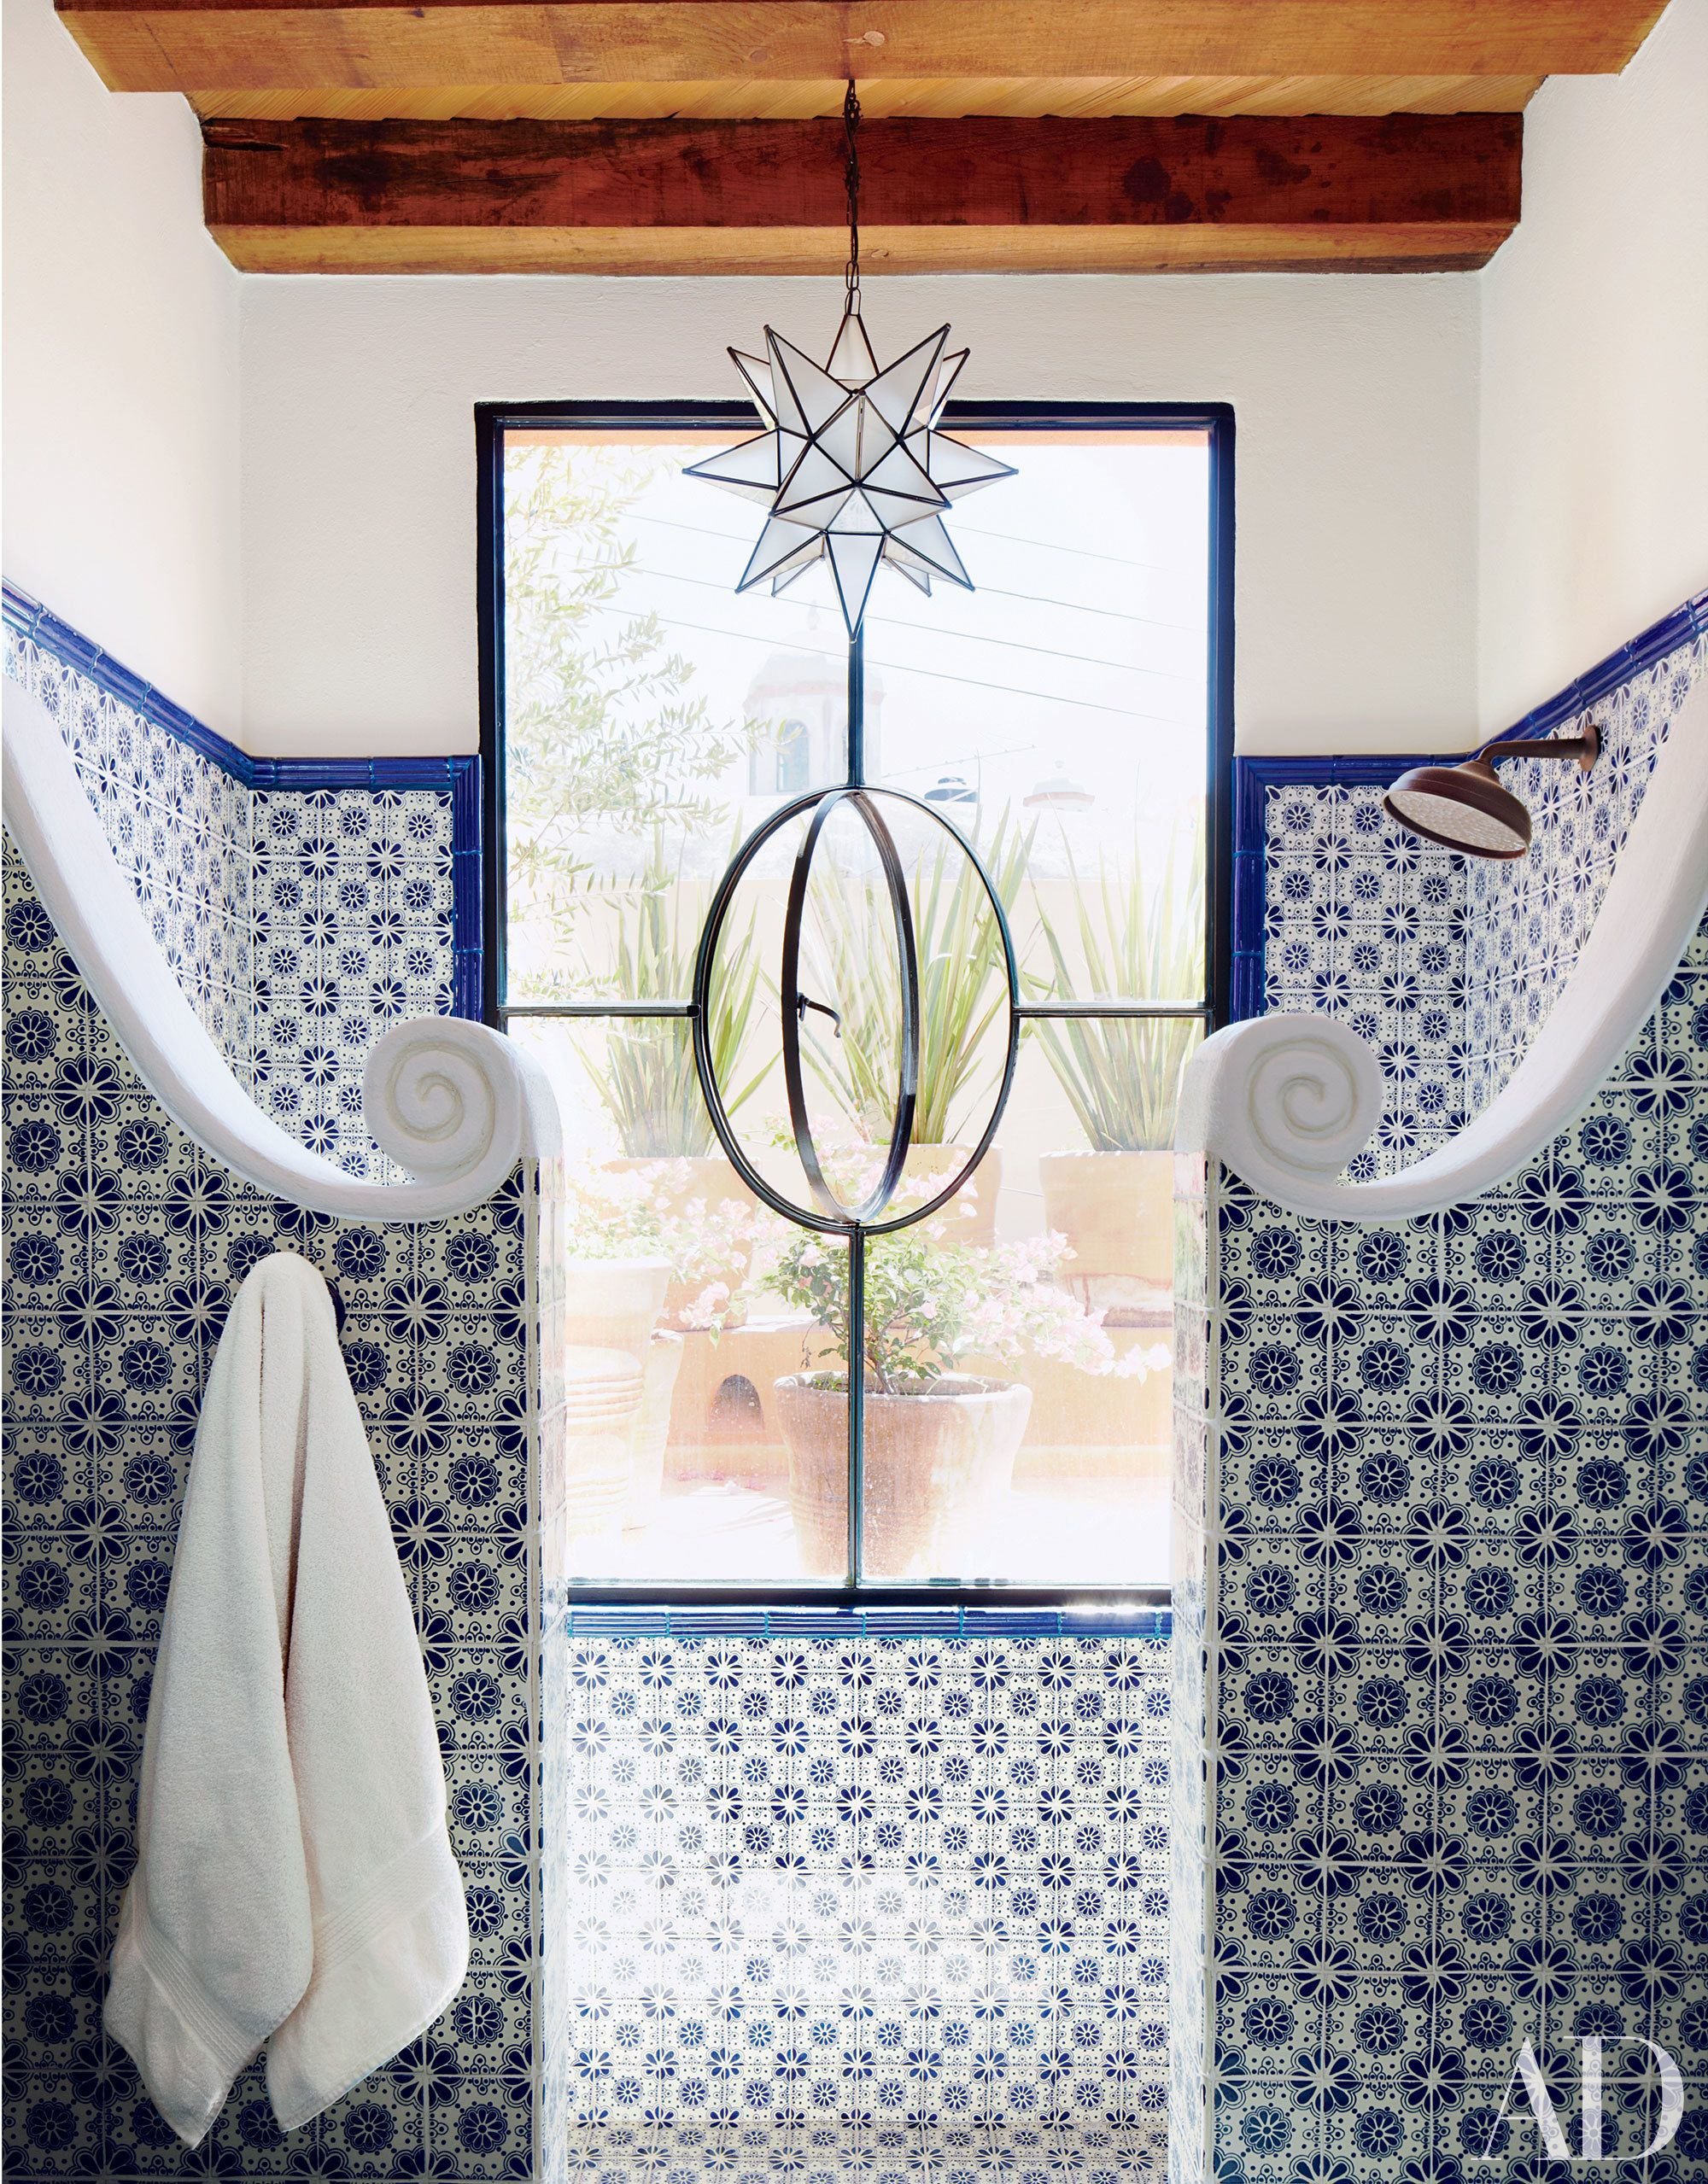 21 Guest Bathrooms That Will Impress Any Visitor | Pinterest | Guest ...